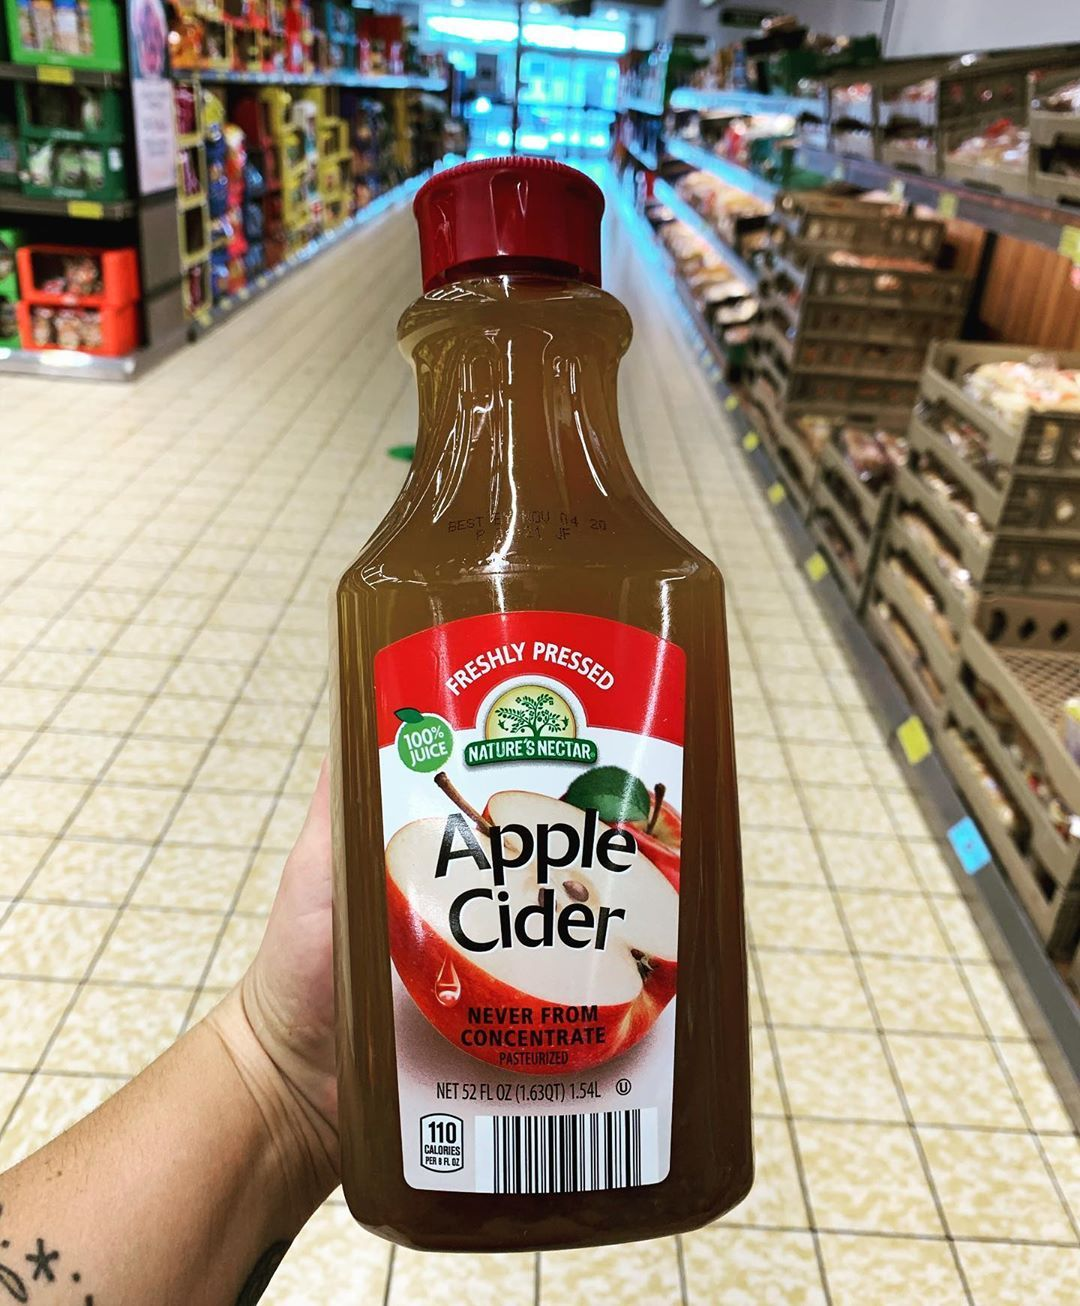 Freshly Pressed Apple Cider Add This To Your Cart Next Time You Re At Aldi And You Ll Be Ready For Fall In 2020 Fall Drinks Apple Cider Pressed Juice